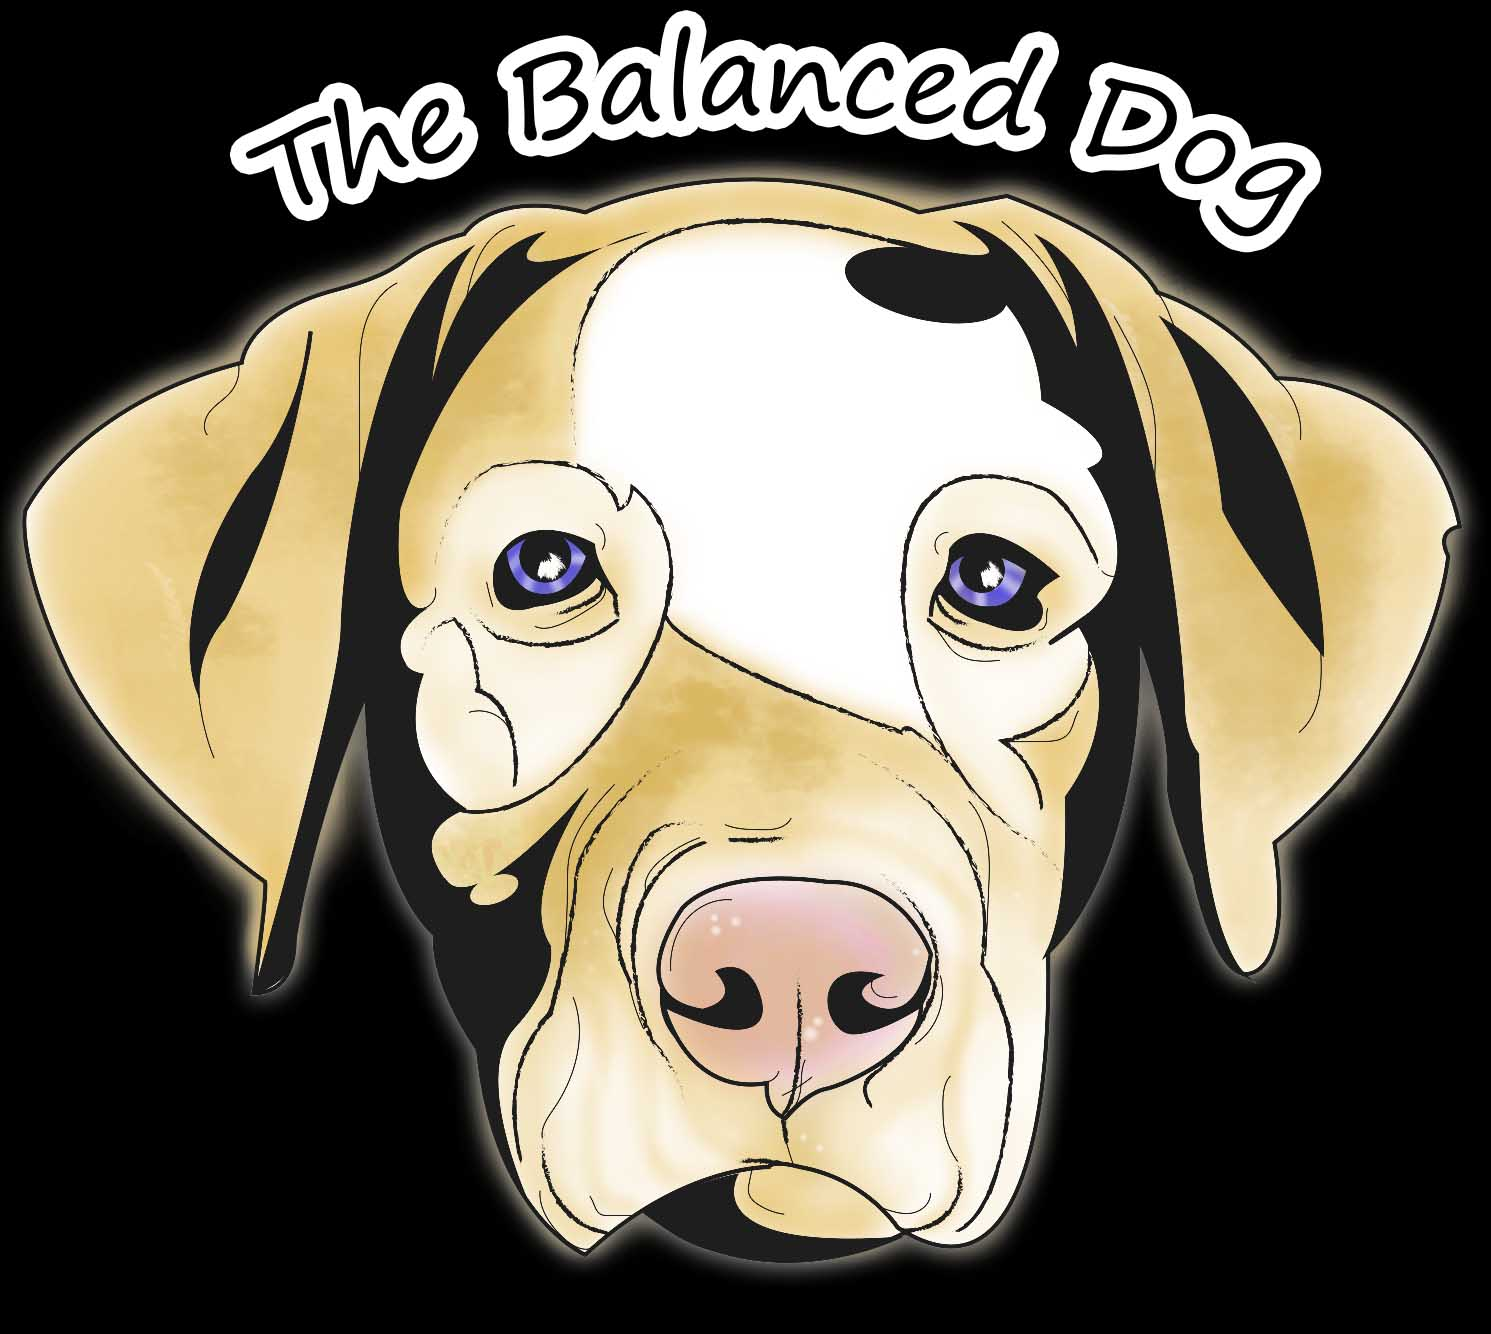 The Balanced Dog Delray Beach